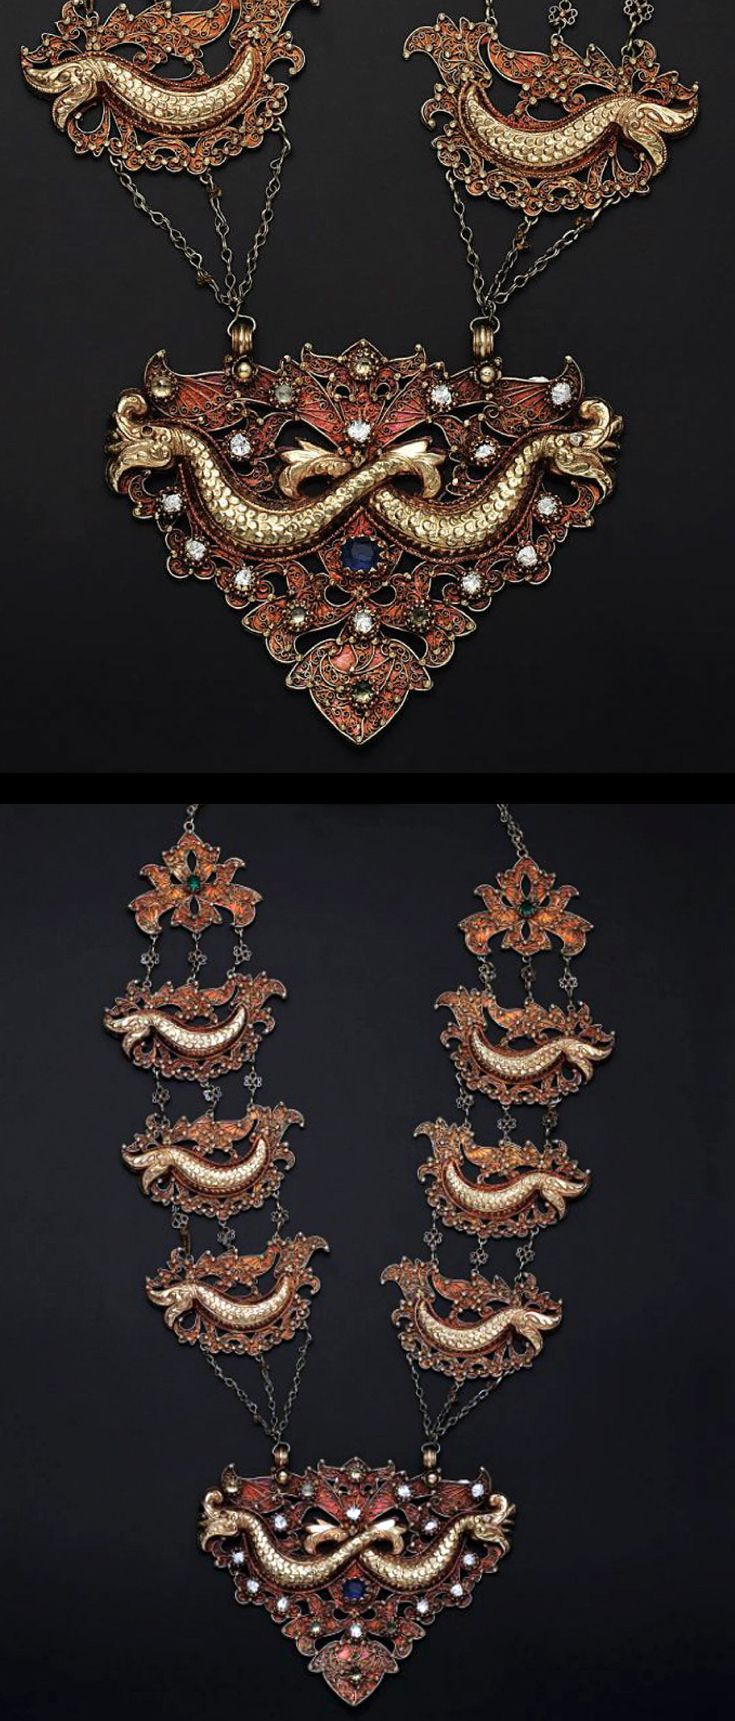 Indonesia Aceh Necklace with naga motifs gold alloy 18th